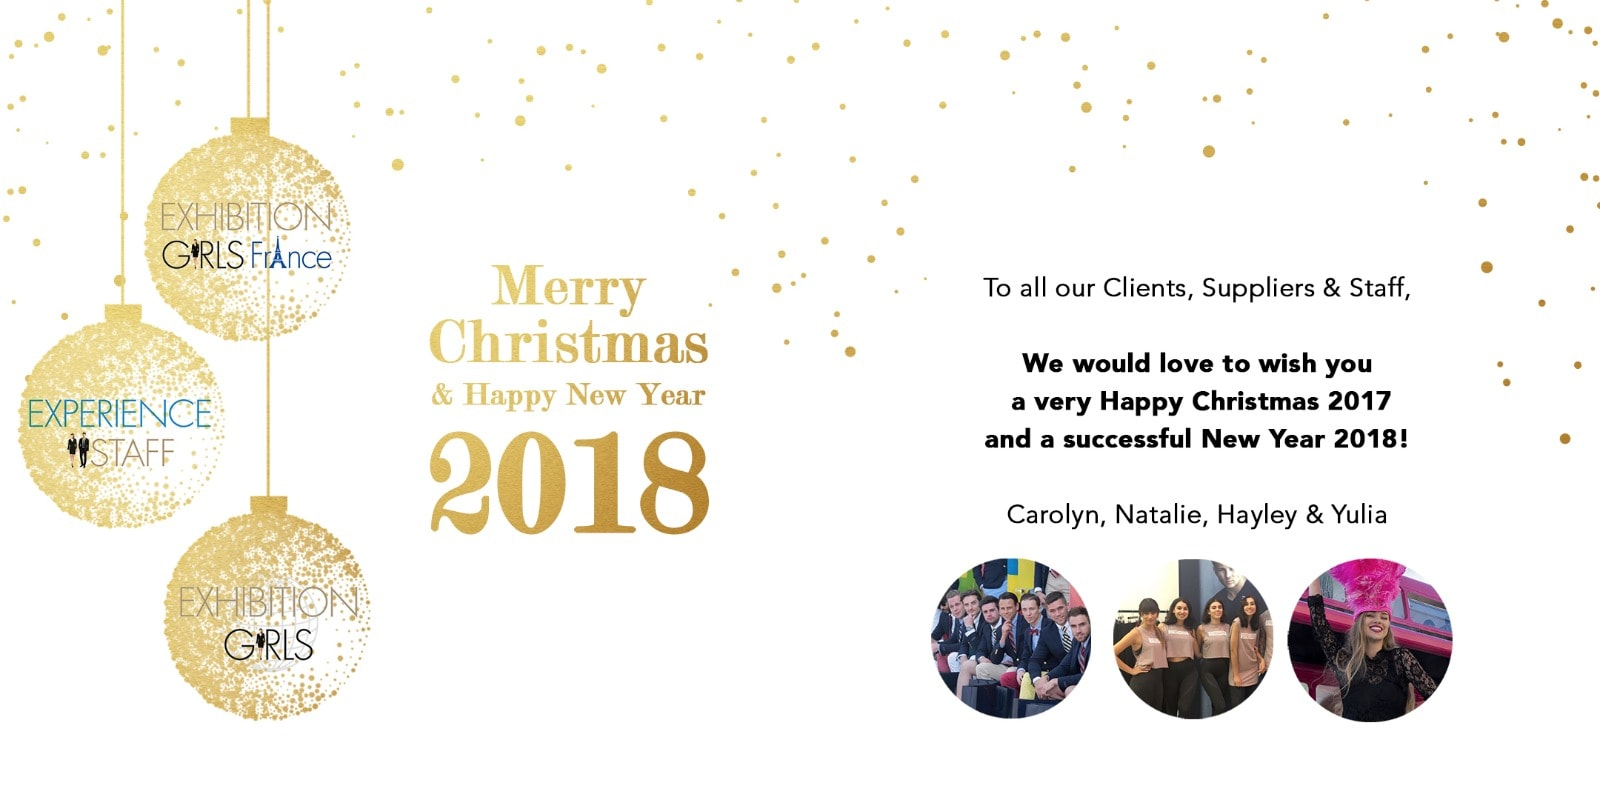 Happy Christmas and New Year 2018 from Exhibition Girls Limited